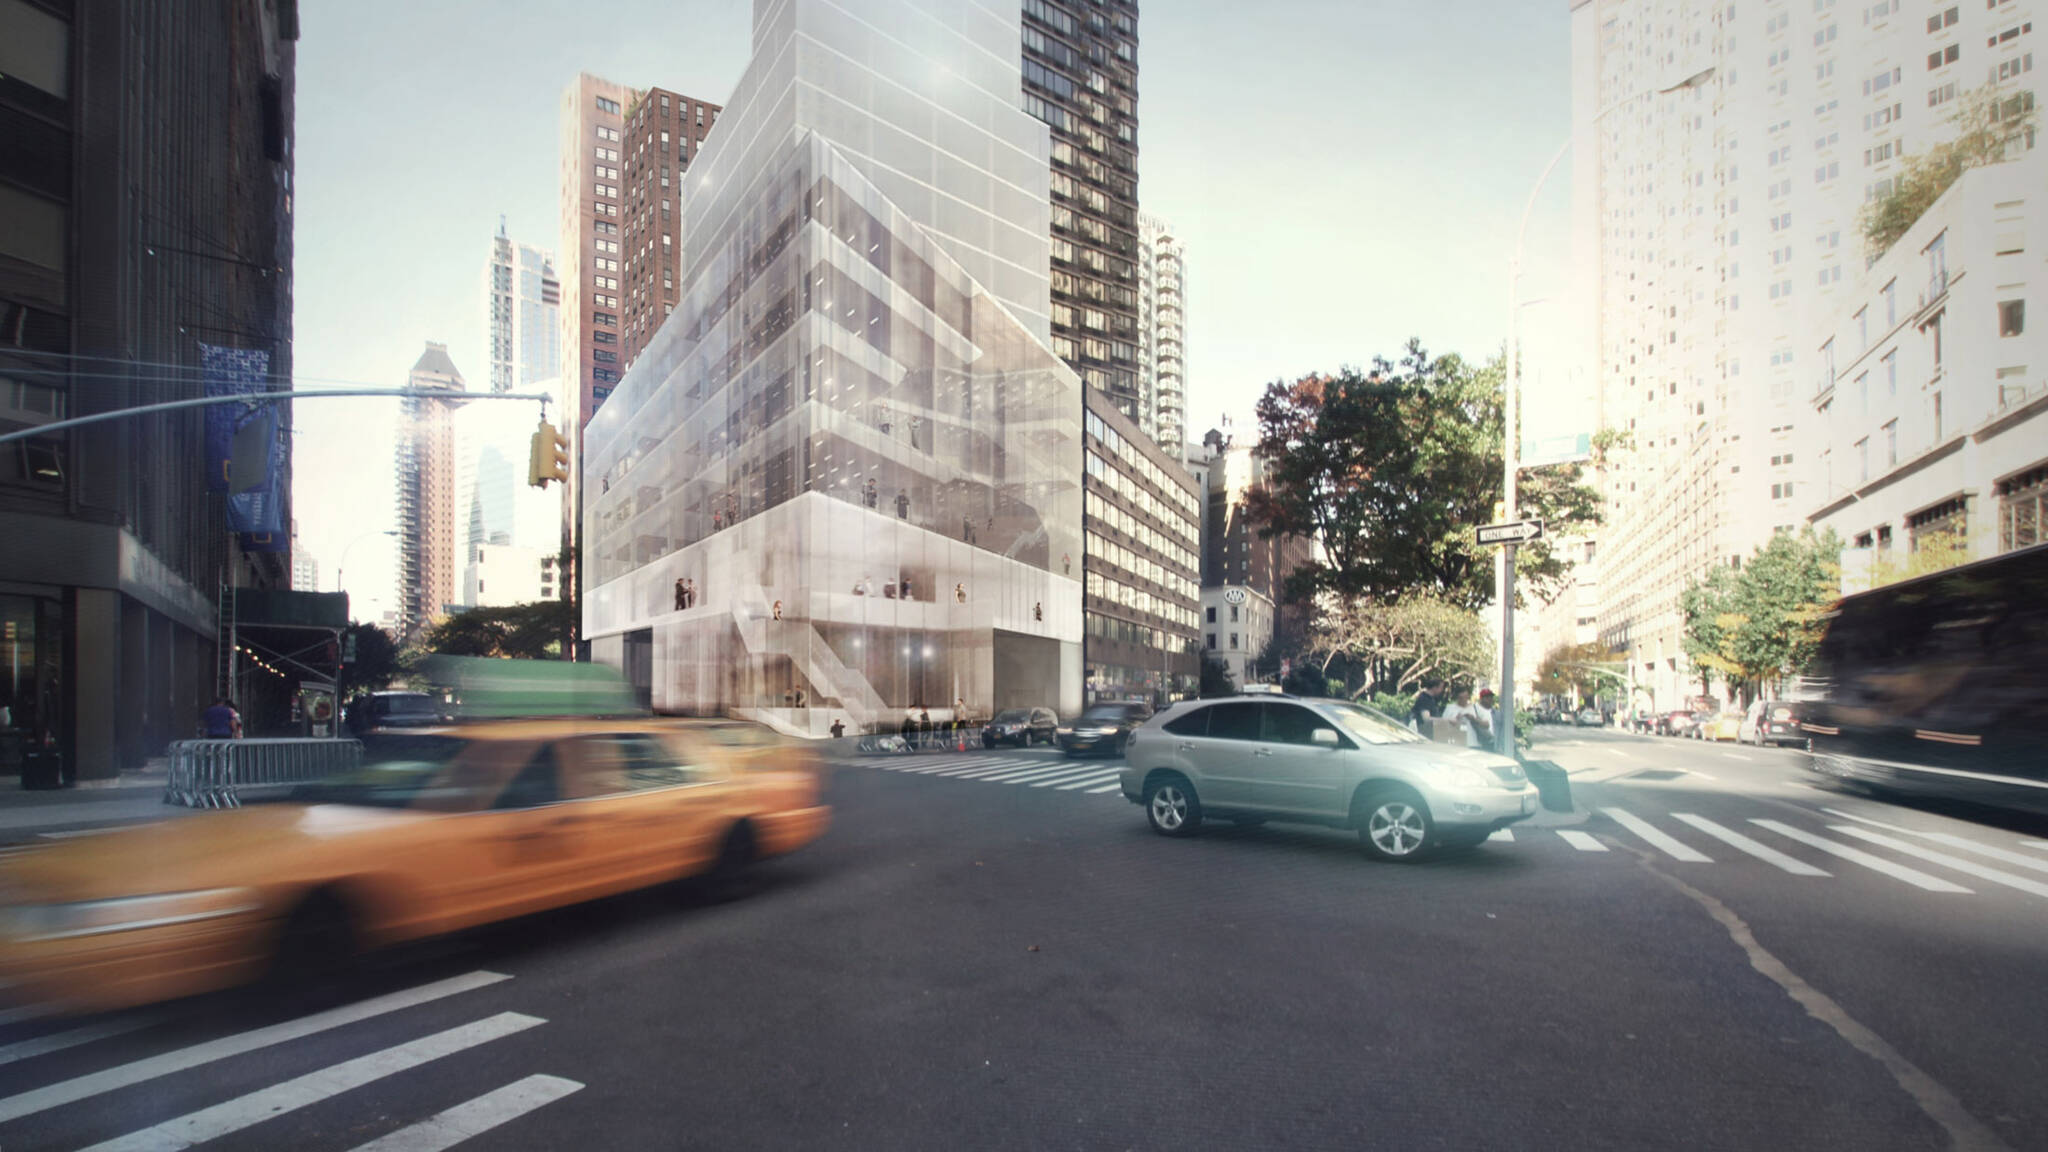 Perspective view from outside of the American Bible Society project located at the Upper West Side, New York City designed by the architecture studio Danny Forster & Architecture